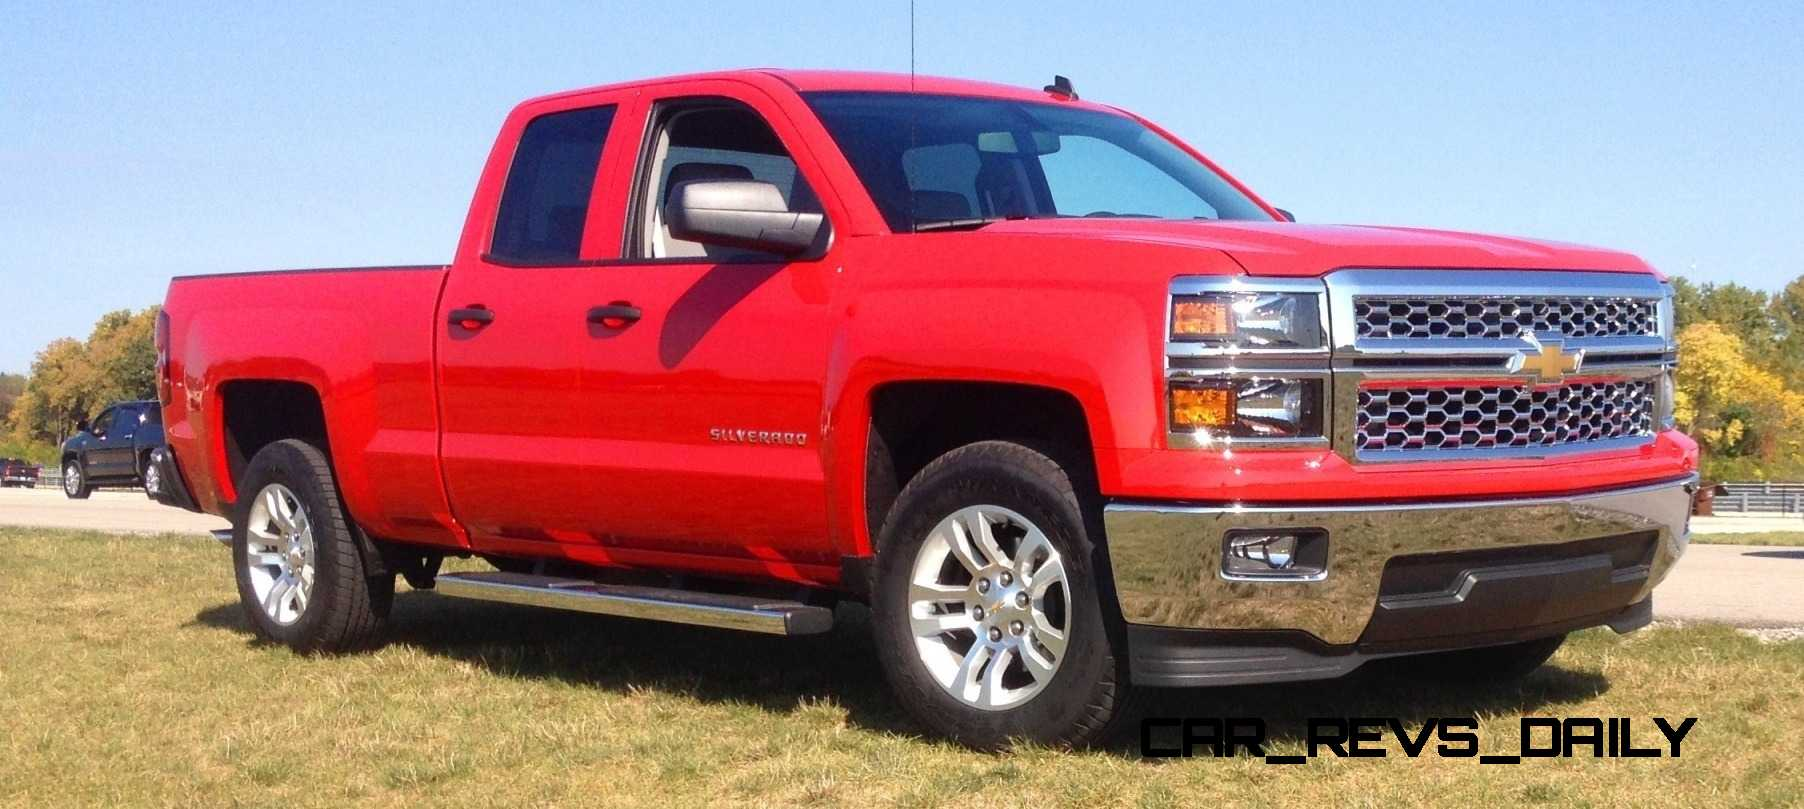 2014 Silverado 1500 LT An All-Star Truck for All Seasons - Mega Galleries58